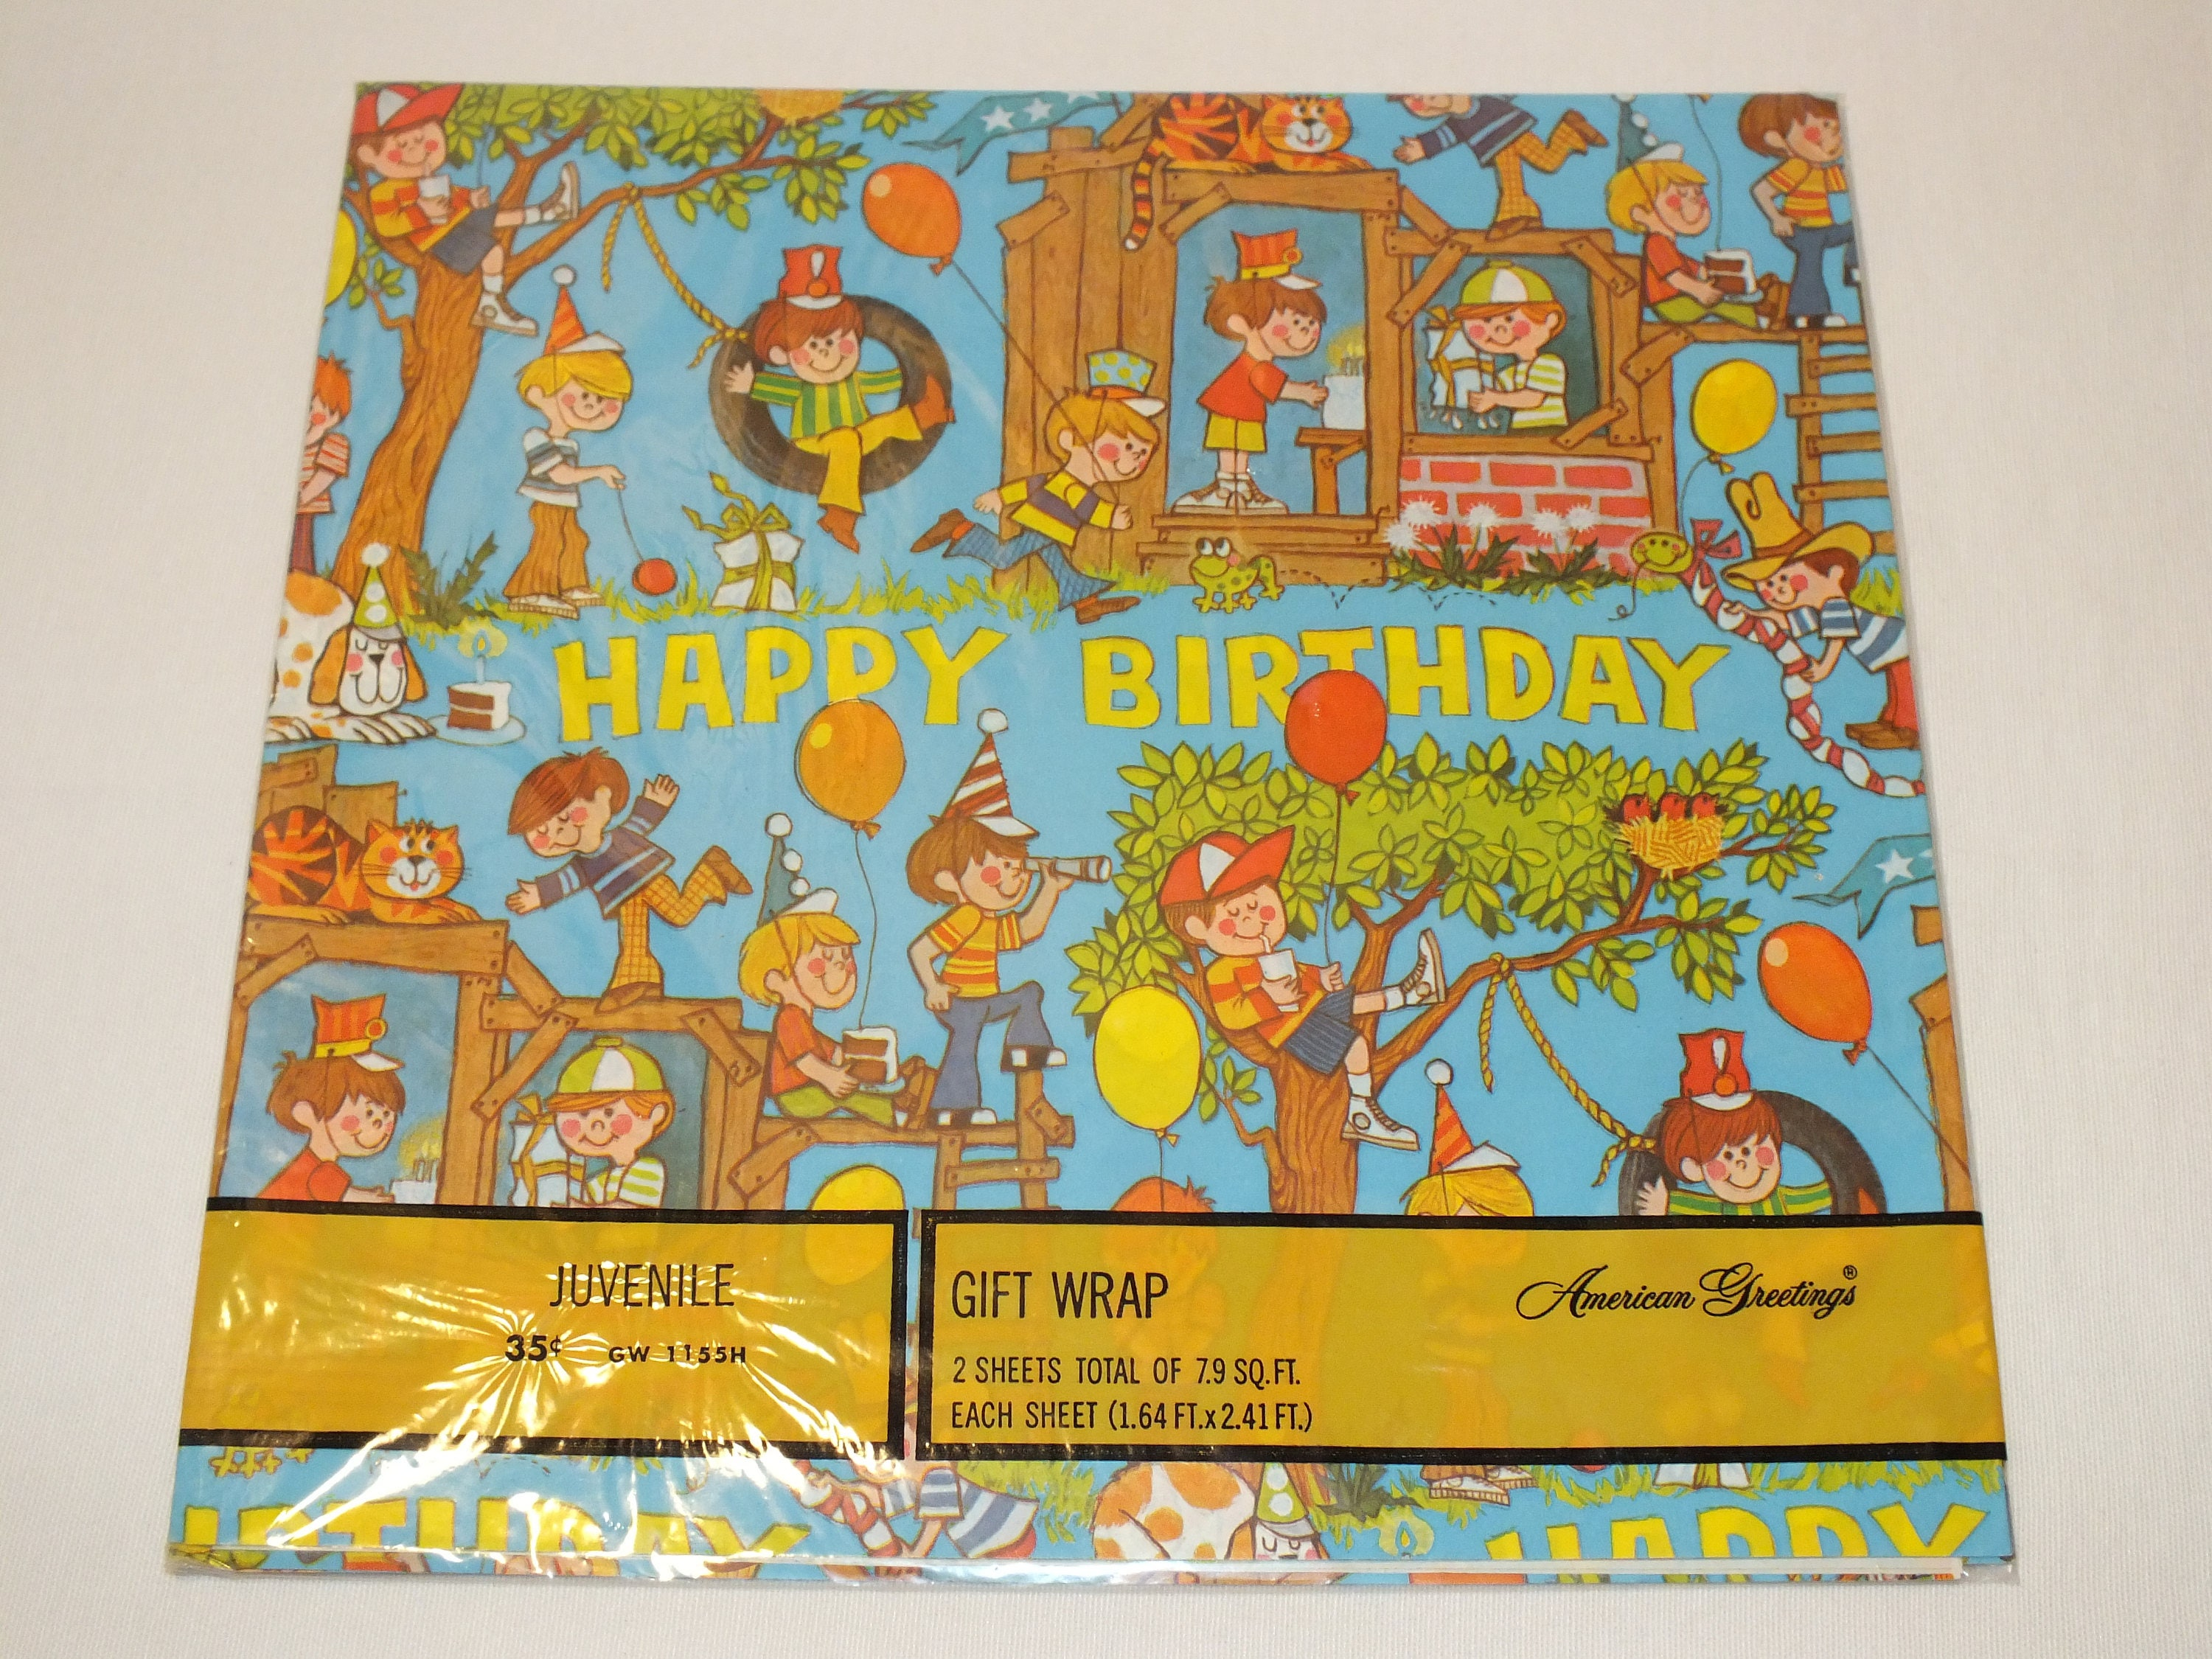 Vintage American Greetings Wrapping Paper Gift Wrap Happy Birthday